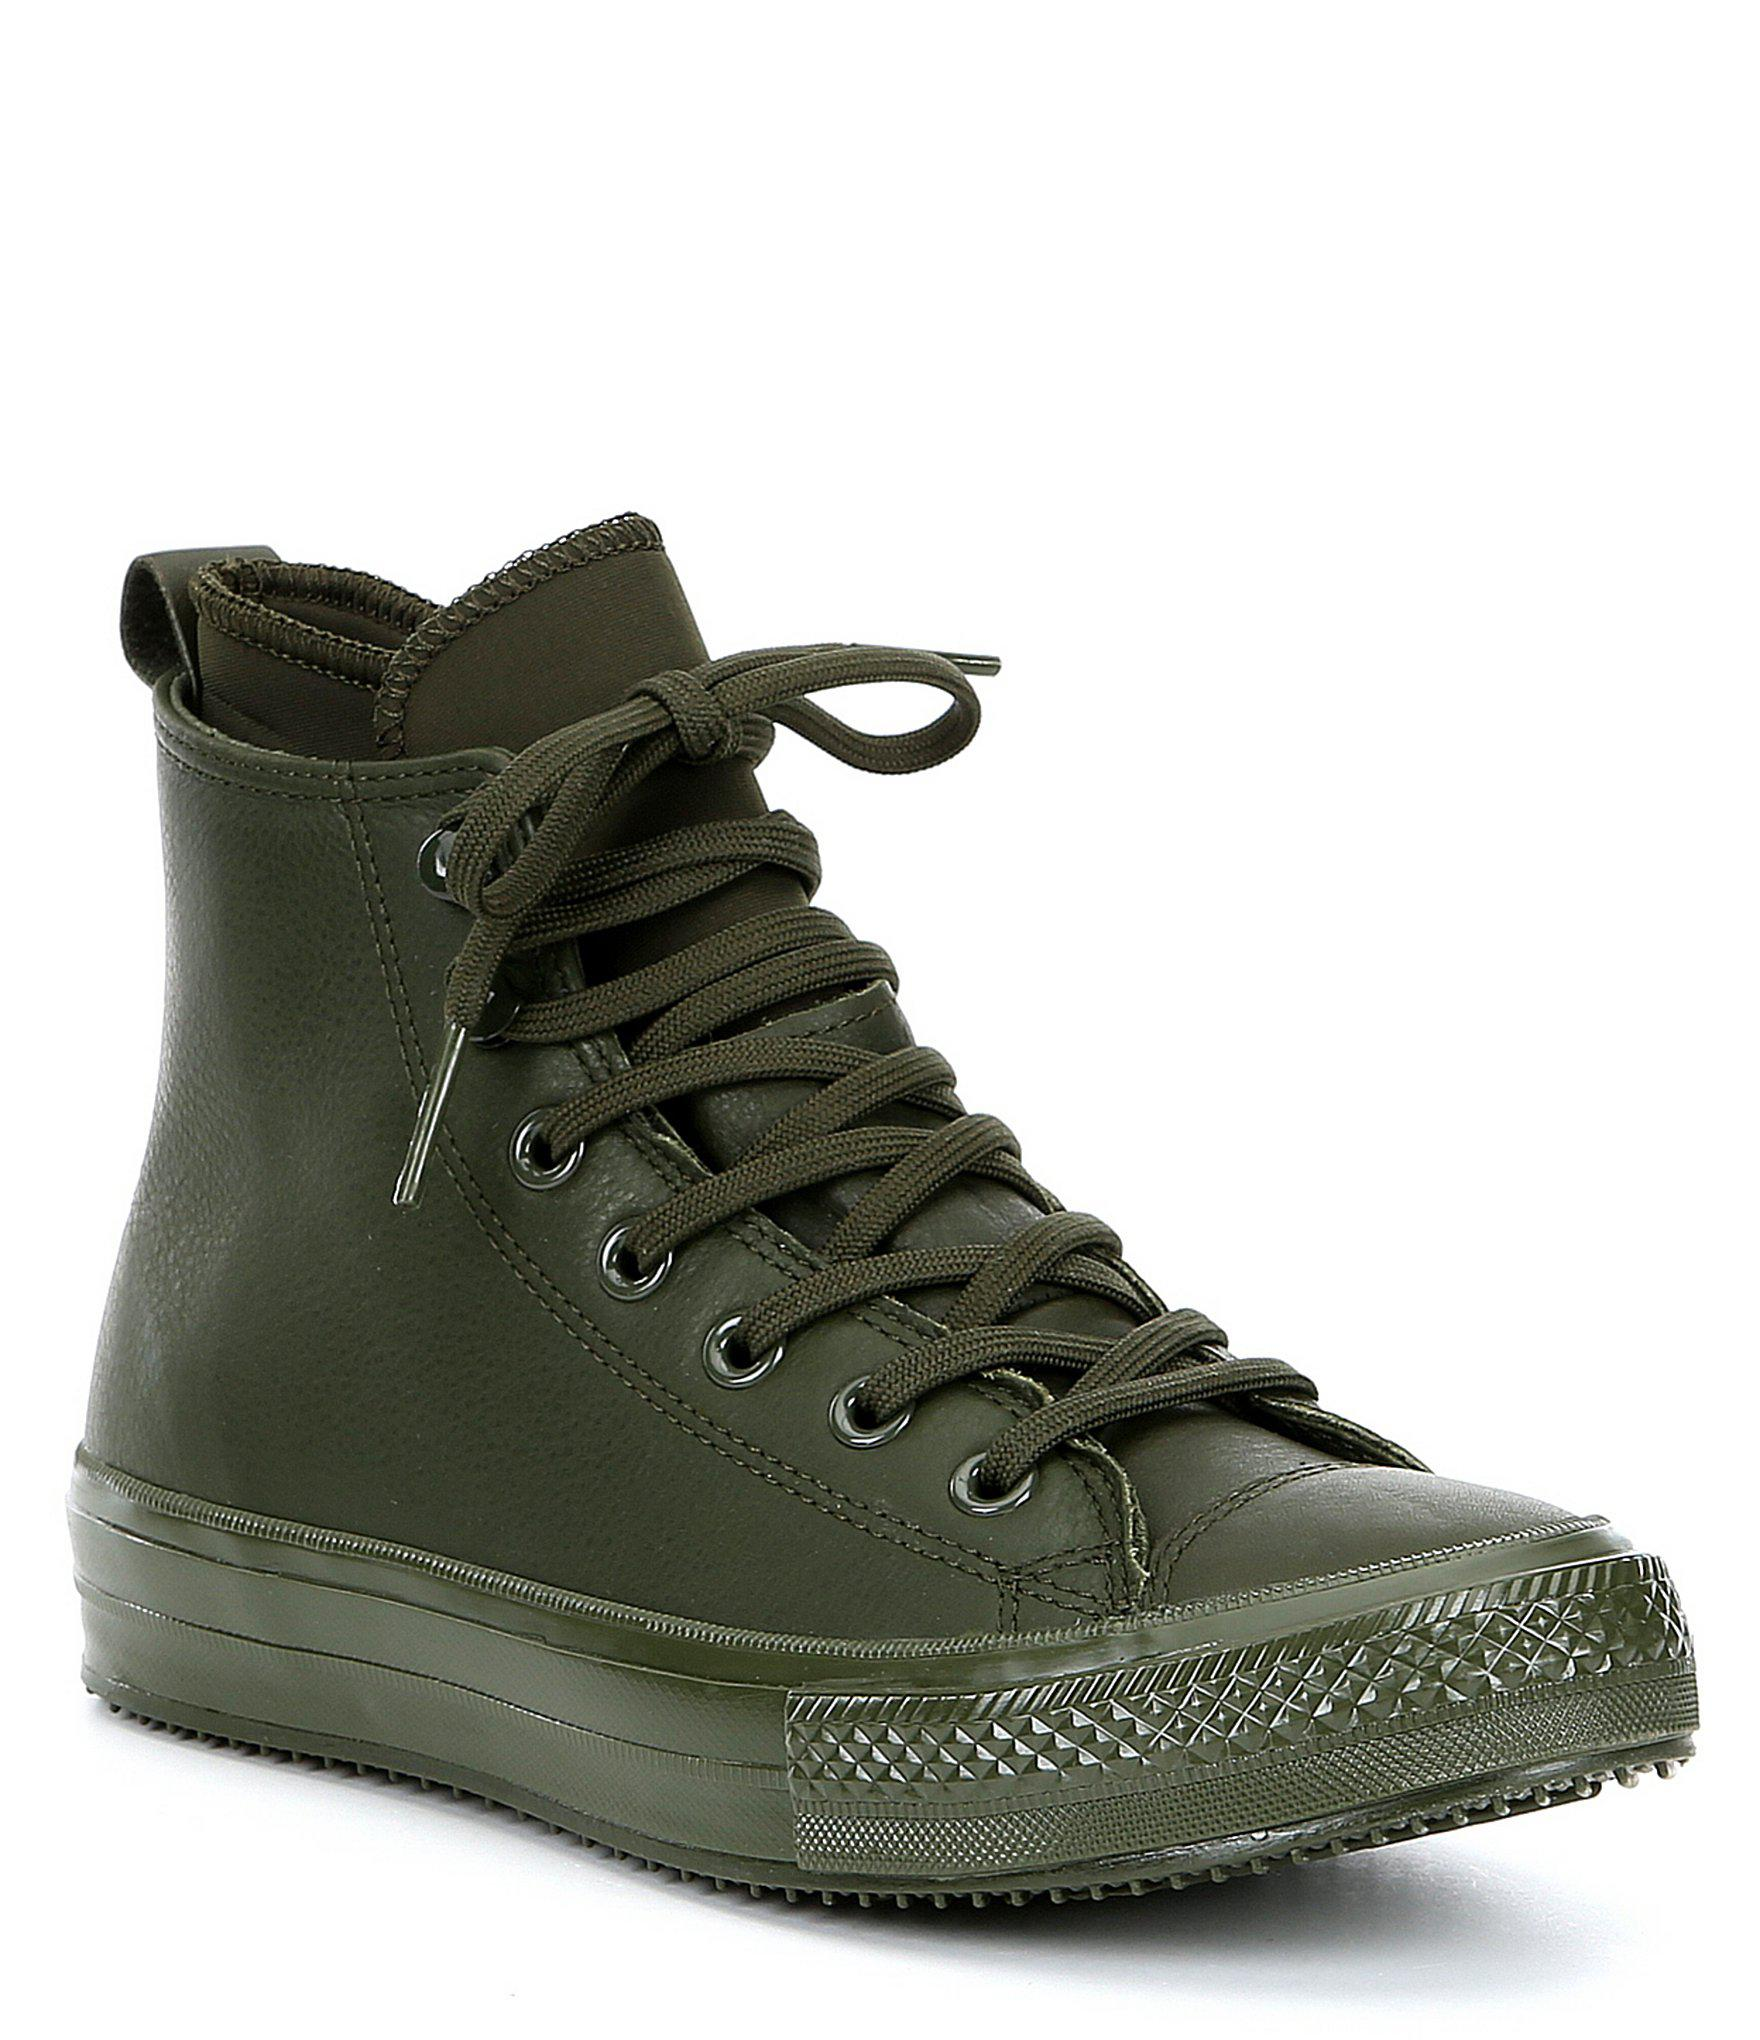 ecbeb8d0aed Lyst - Converse Chuck Taylor All Star Waterproof Boot Hi Sneakers in ...